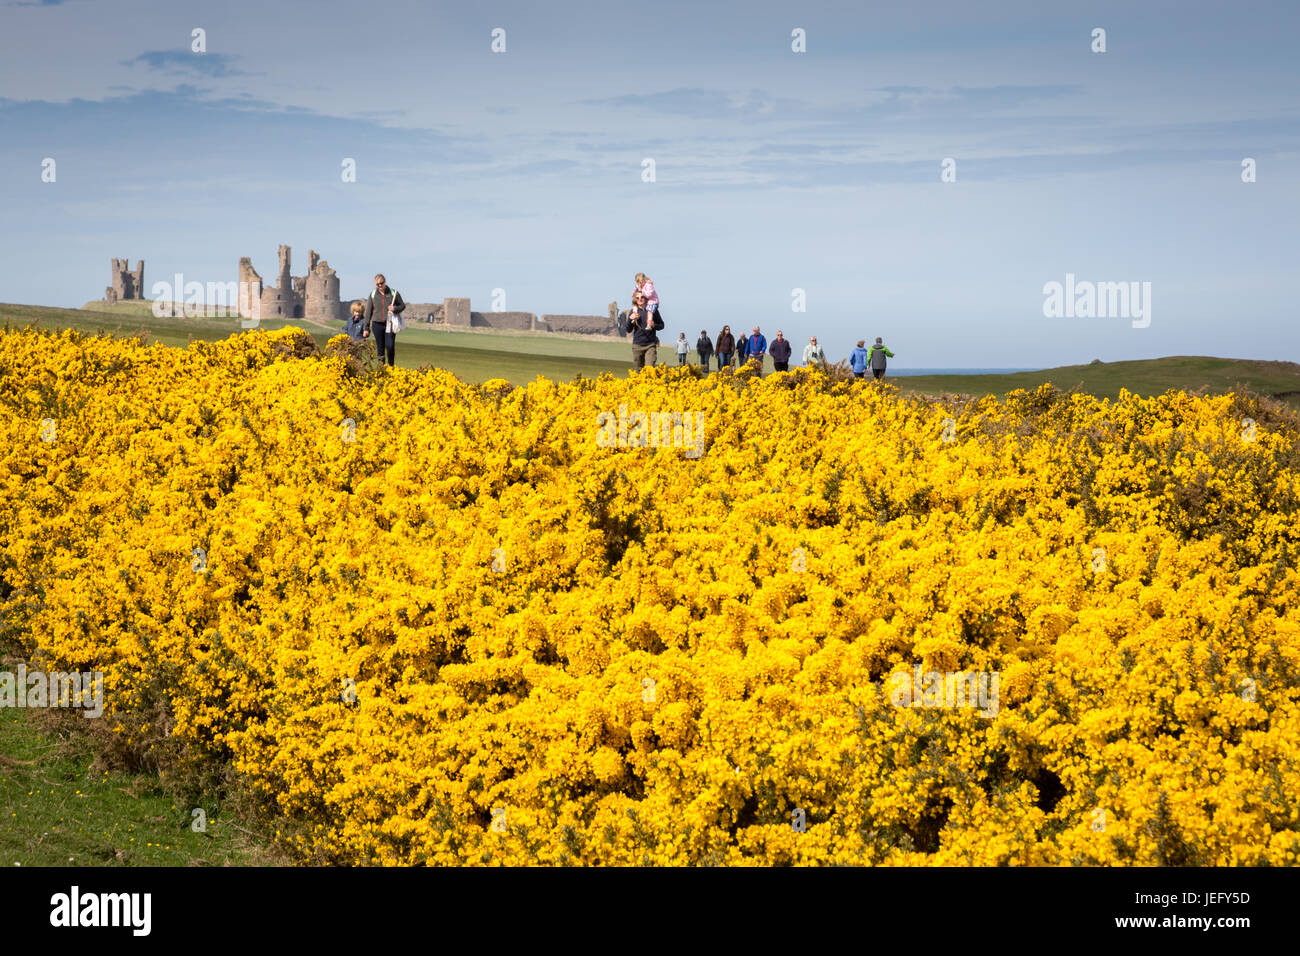 Dunstanburgh Castle, Northumberland, England, UK, Europe. - Stock Image